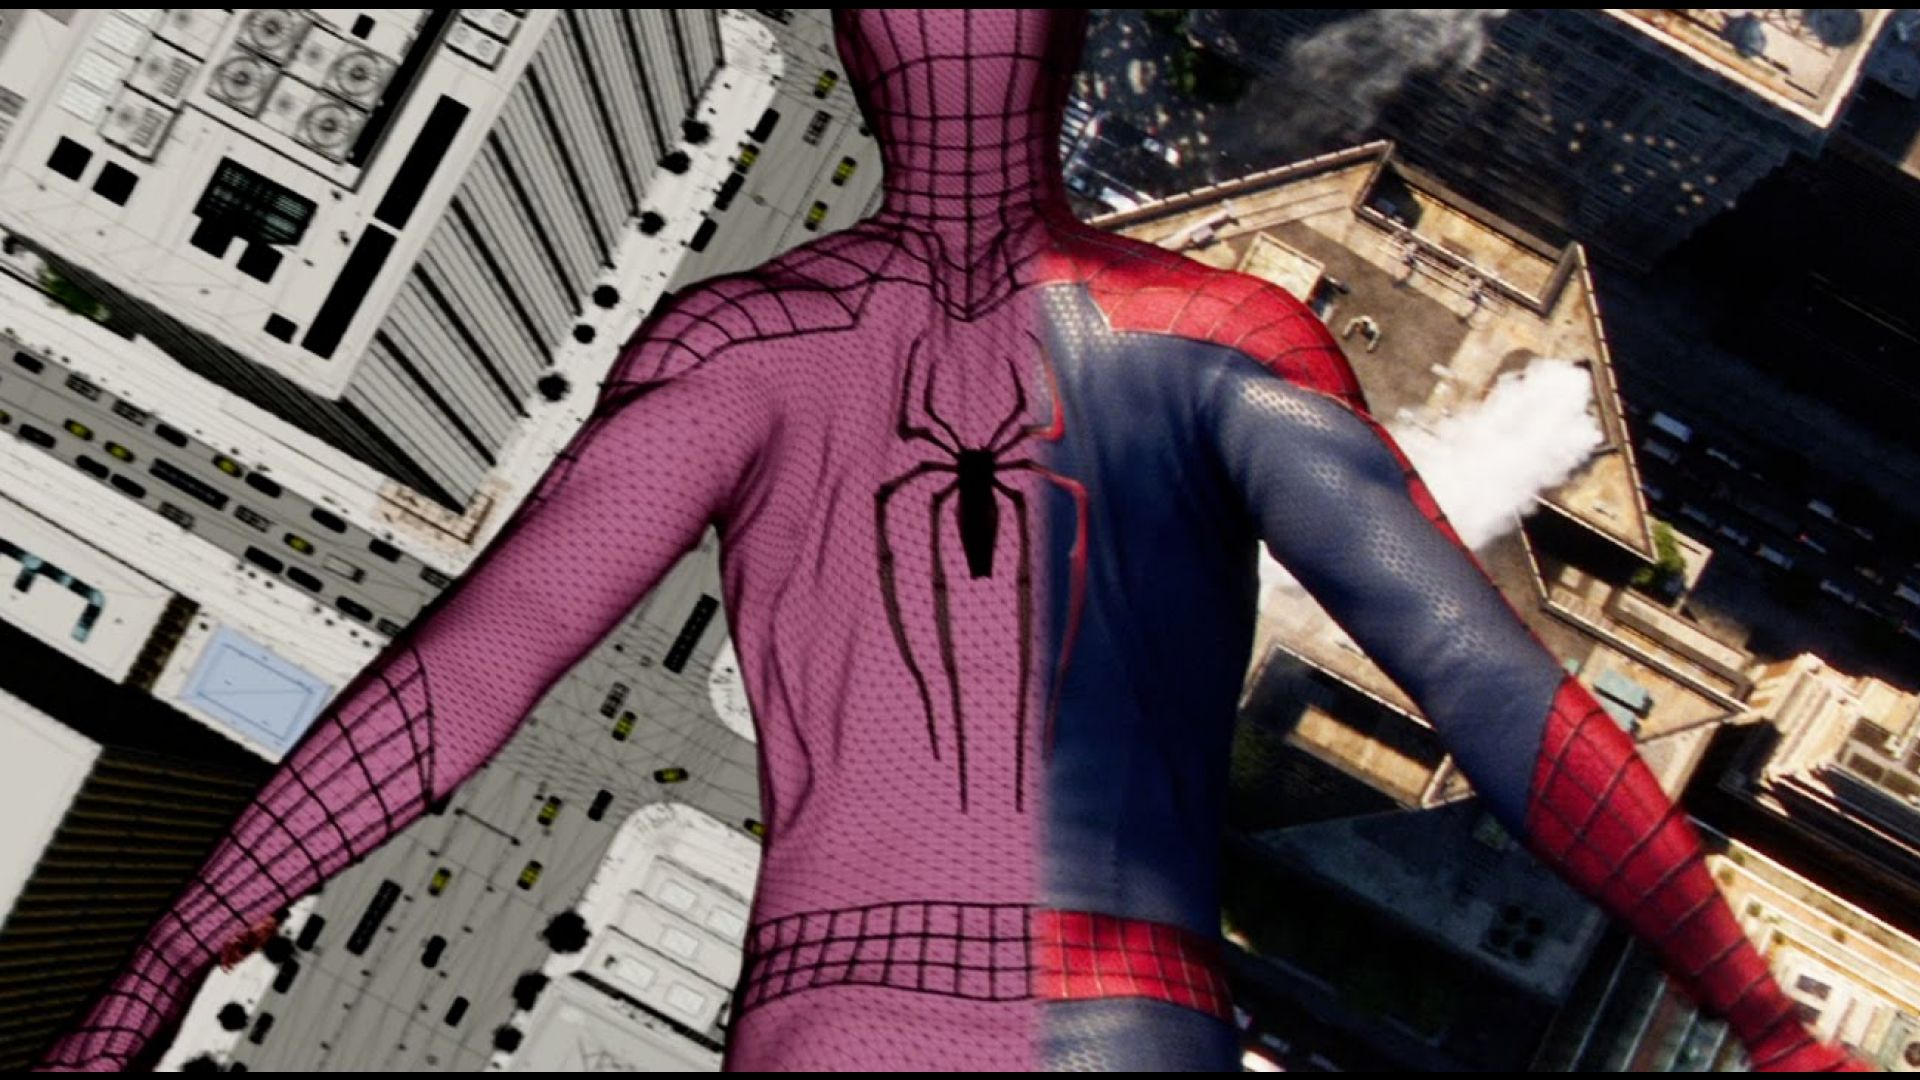 Visual Effects: The Environments of Amazing Spider-Man 2